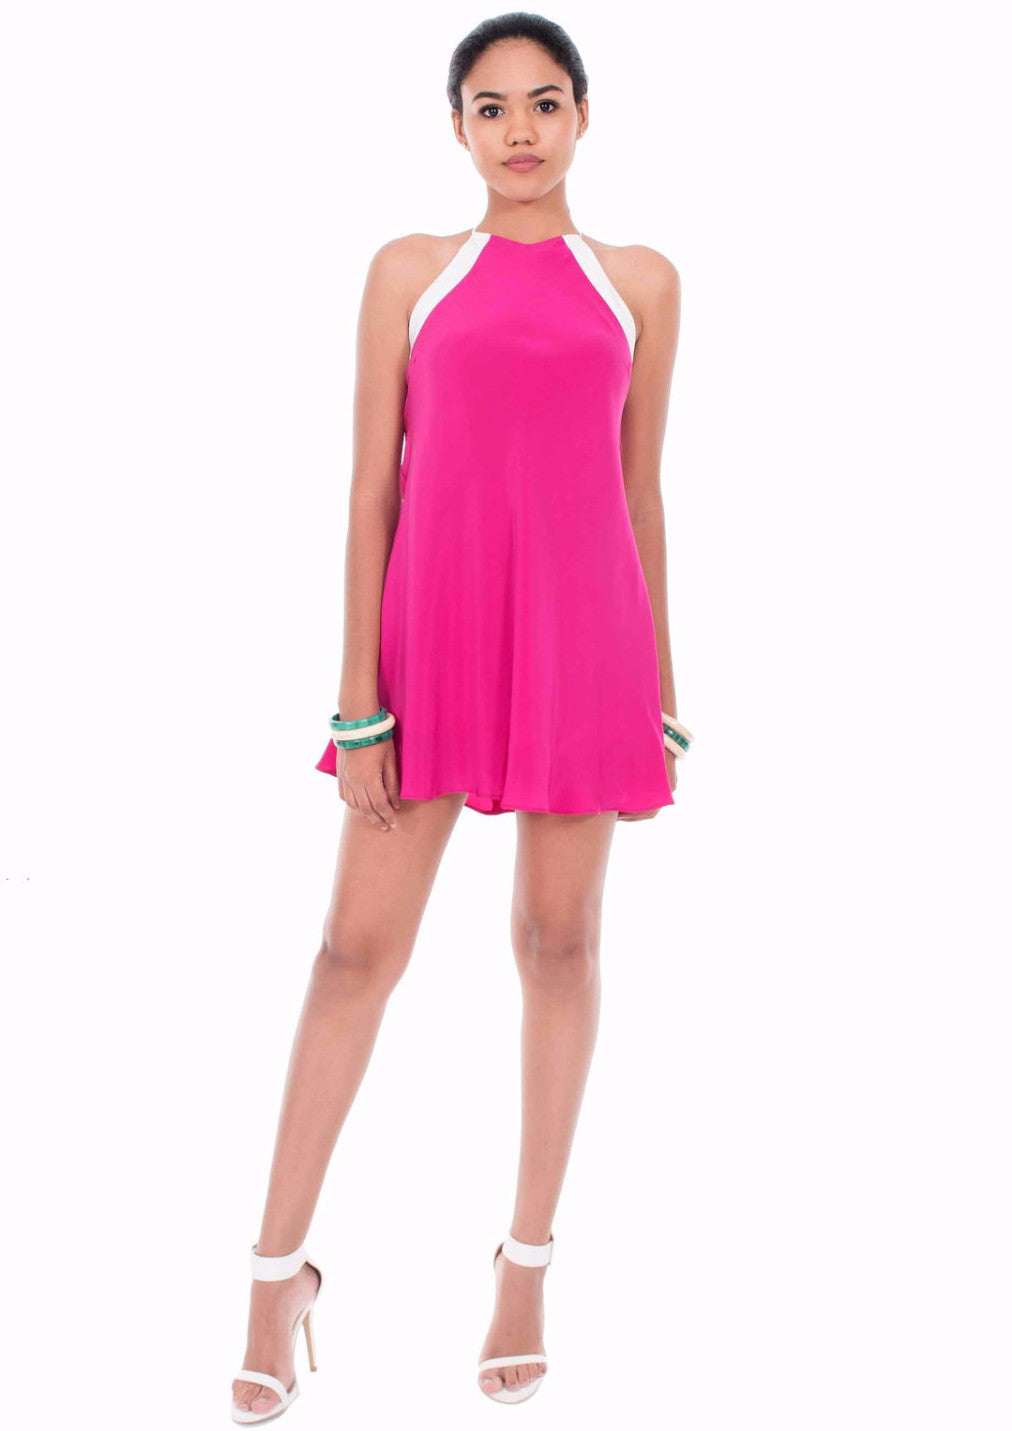 Pink Sail Silk Mini Dress by Isy B. Design - Front View on Model